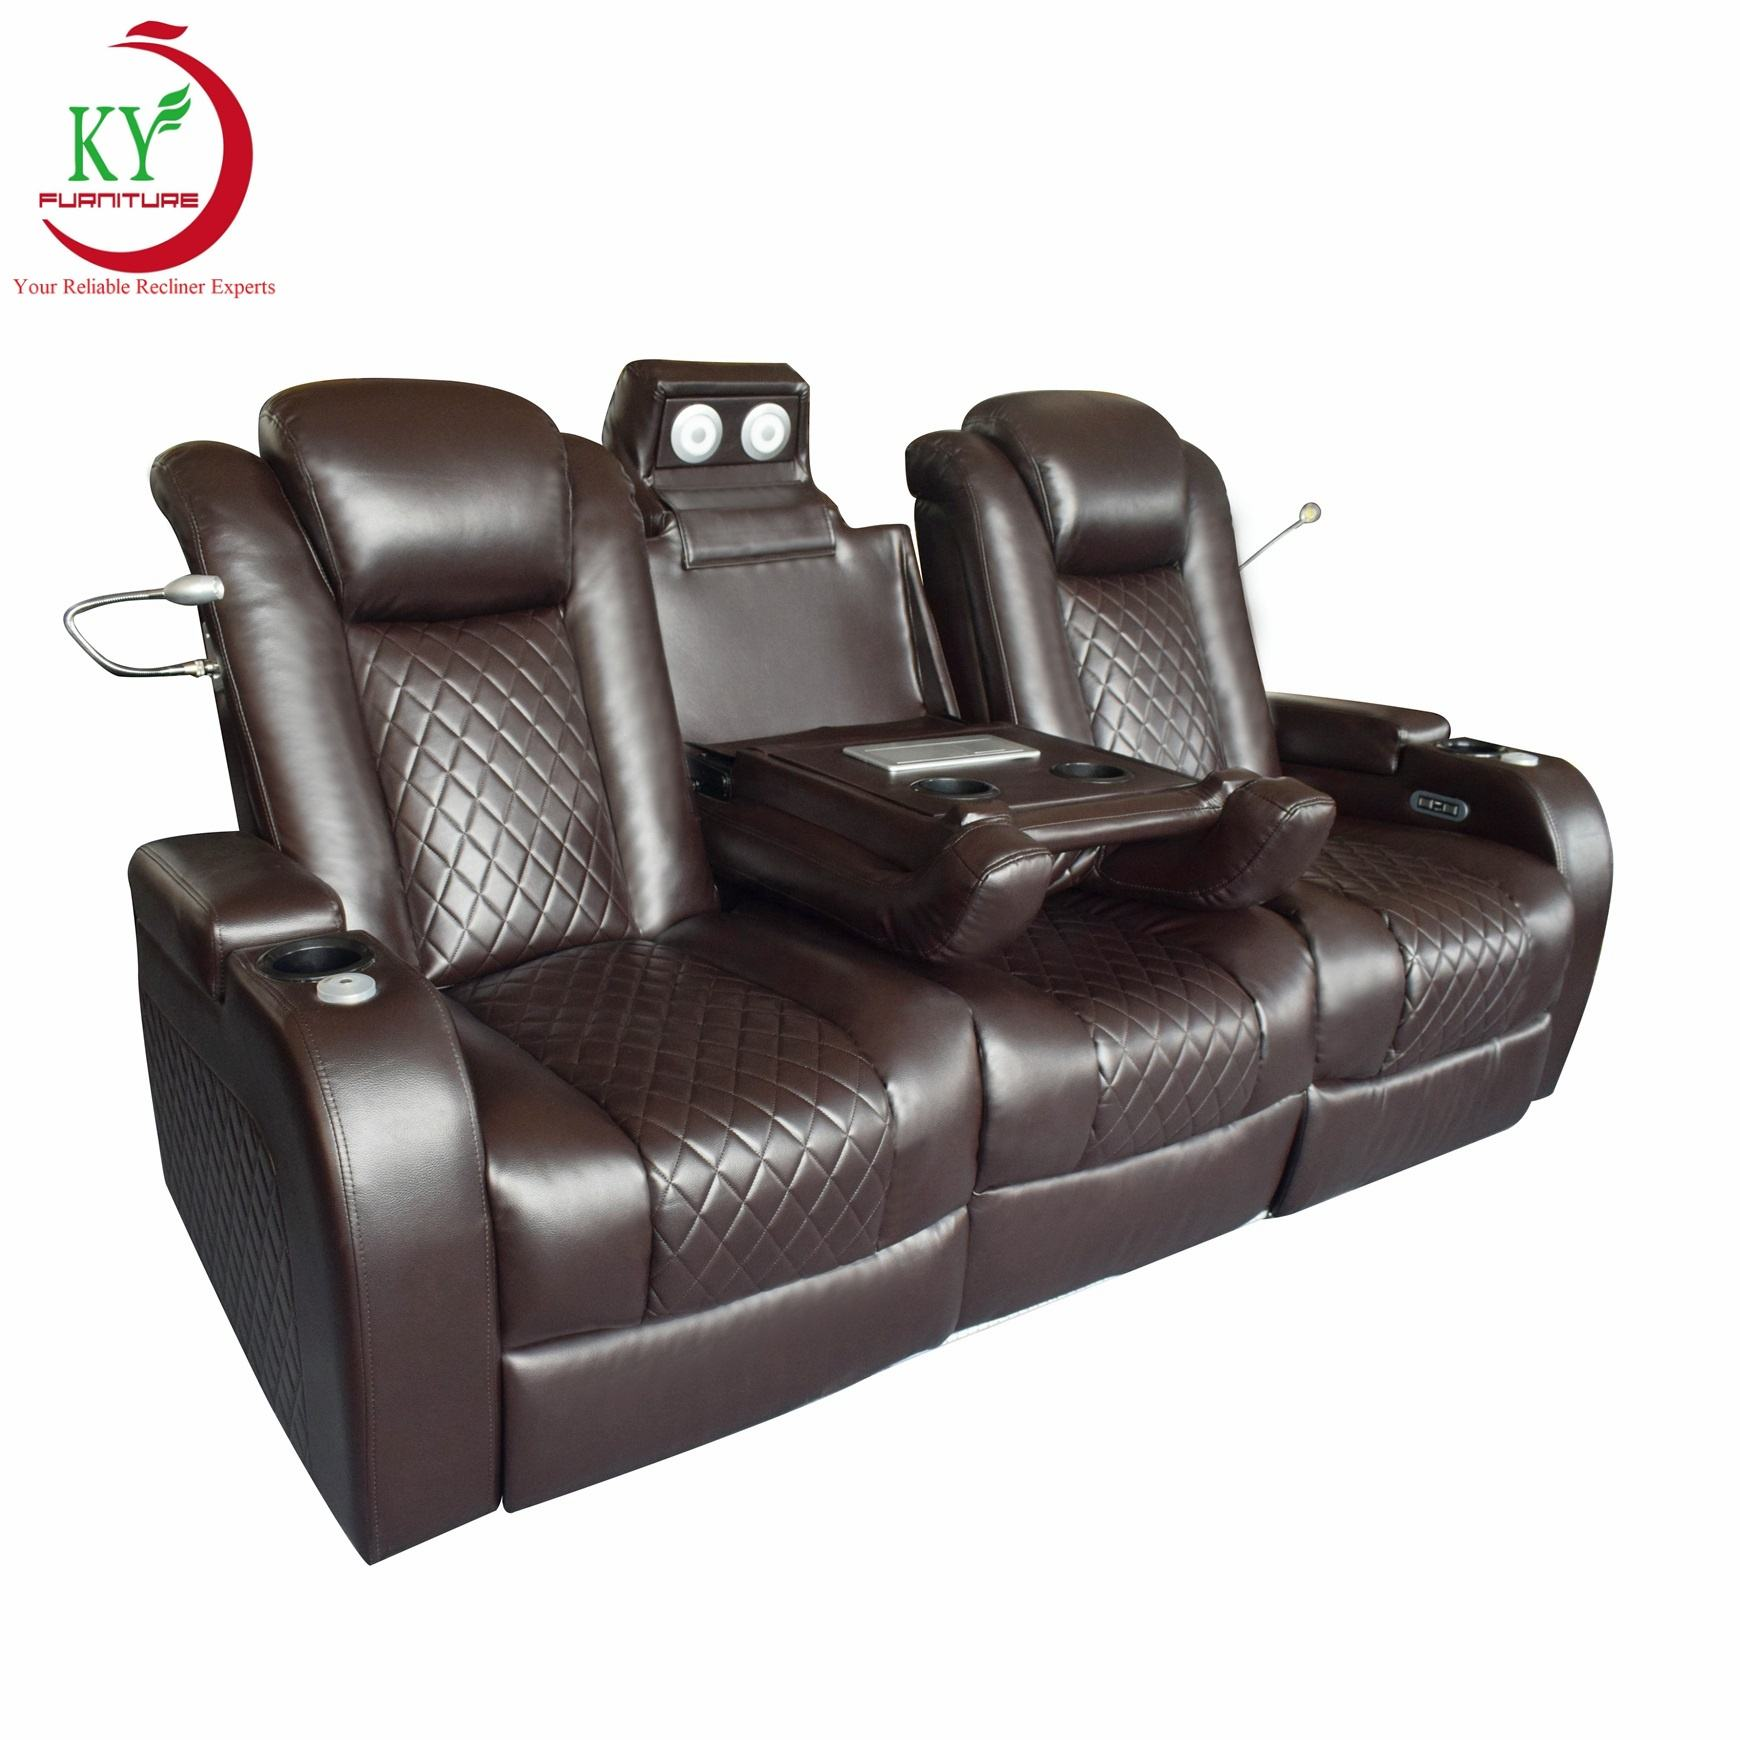 JKY Furniture Customized Adjustable Living Room Power Electric VIP Movie Home Theater Cinema Seating Recliner Sofa